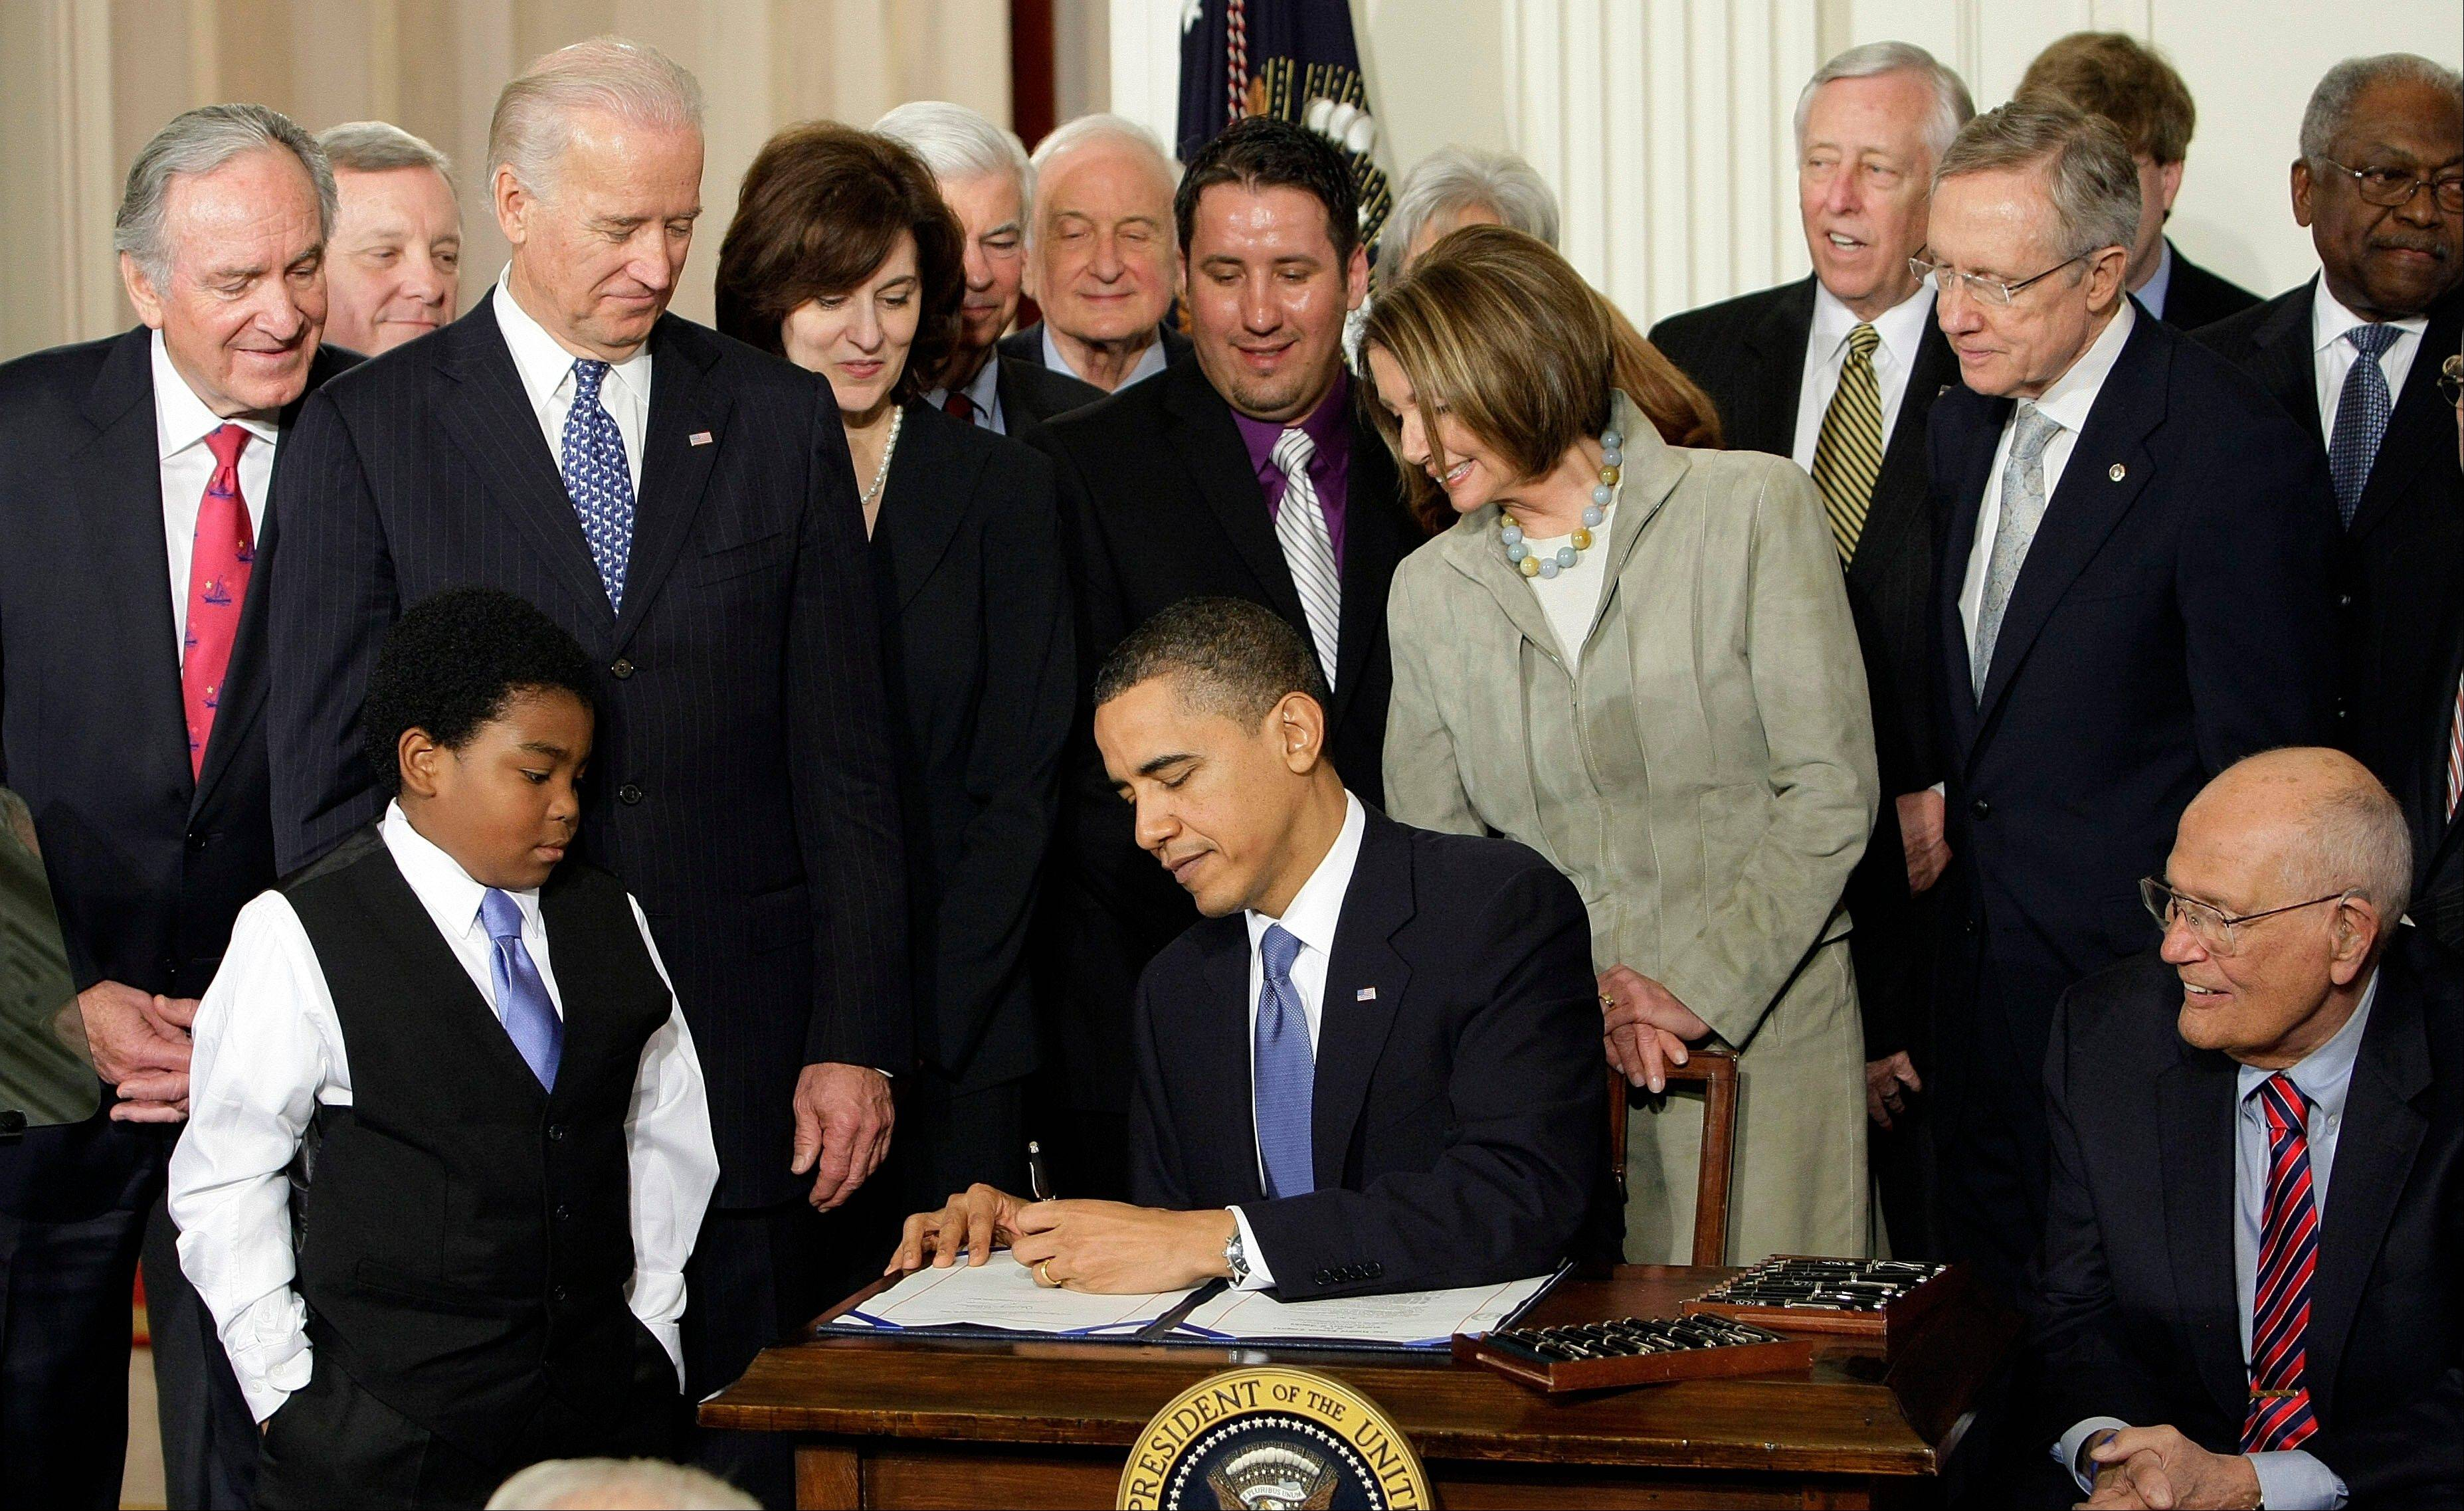 In this March 23, 2010, file photo, President Barack Obama signs the health care bill at the White House. Medical claims costs, the biggest driver of health insurance premiums, will jump an average 32 percent for individual policies under the overhaul, according to a study by the nation's leading group of financial risk analysts.